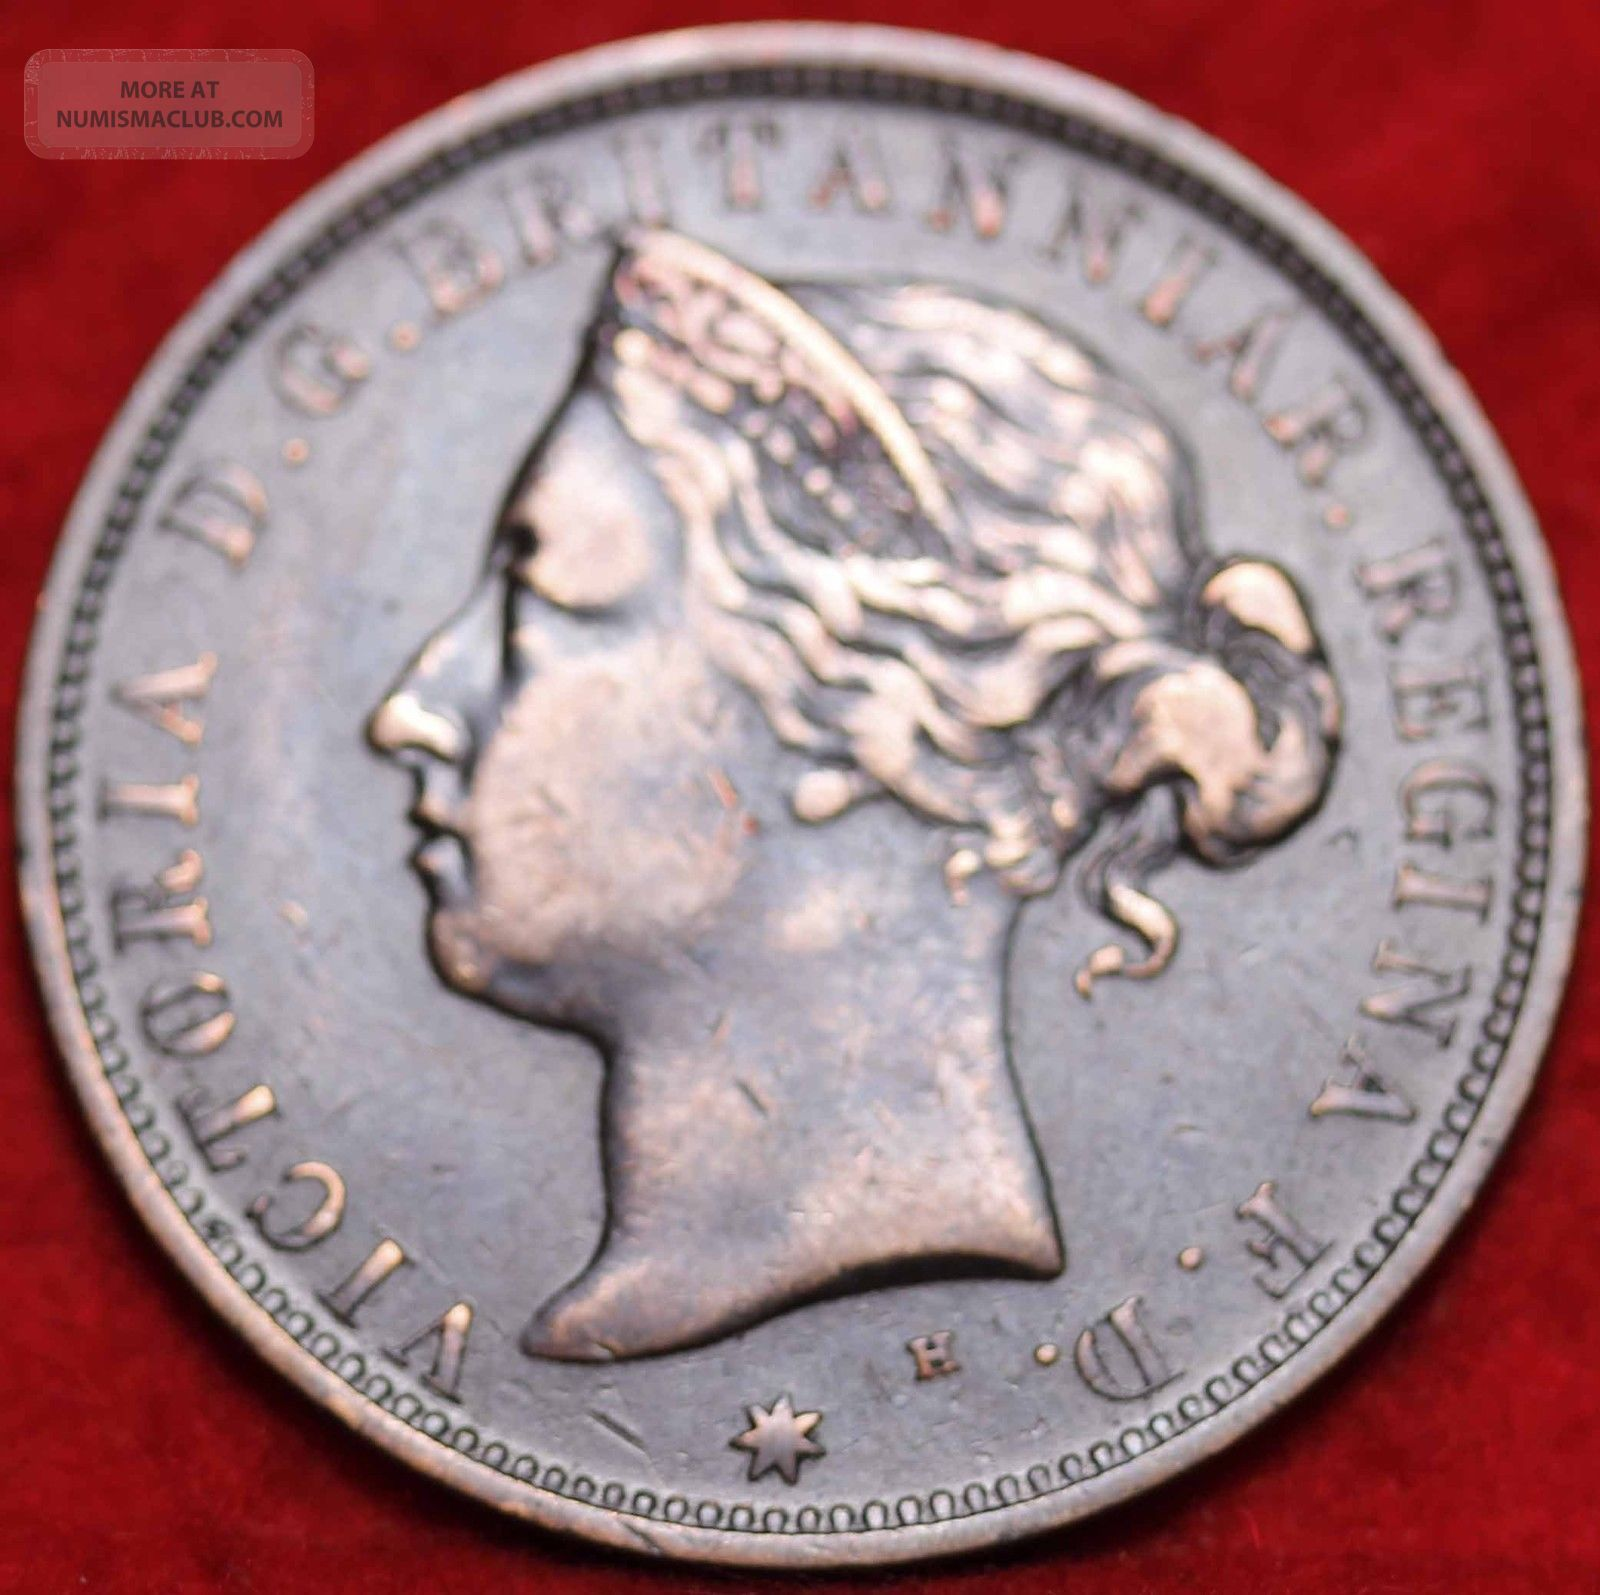 1877 Jersey 1/20 Shilling Foreign Coin S/h Coins: World photo